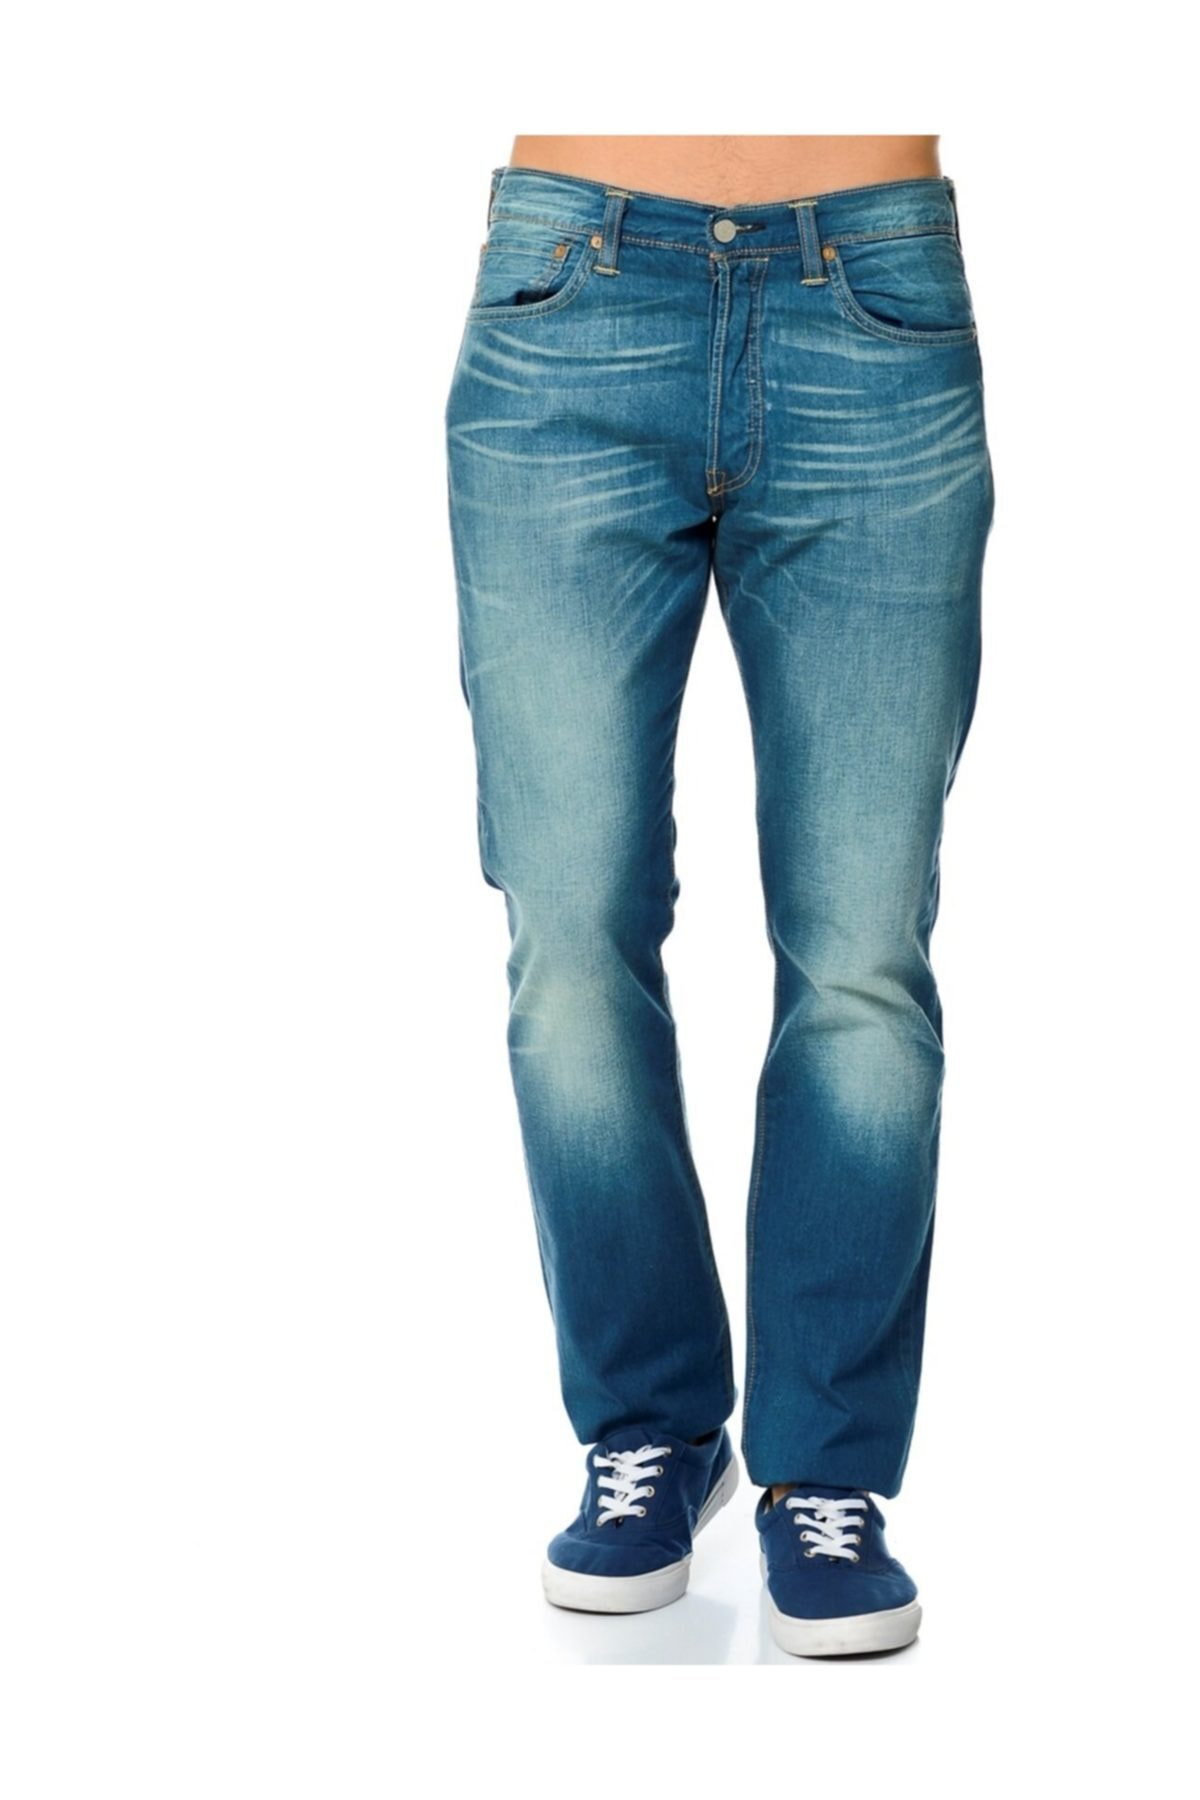 Levi's 501 Original Fit Straight Erkek Jean Pantolon (00501-2015) 2